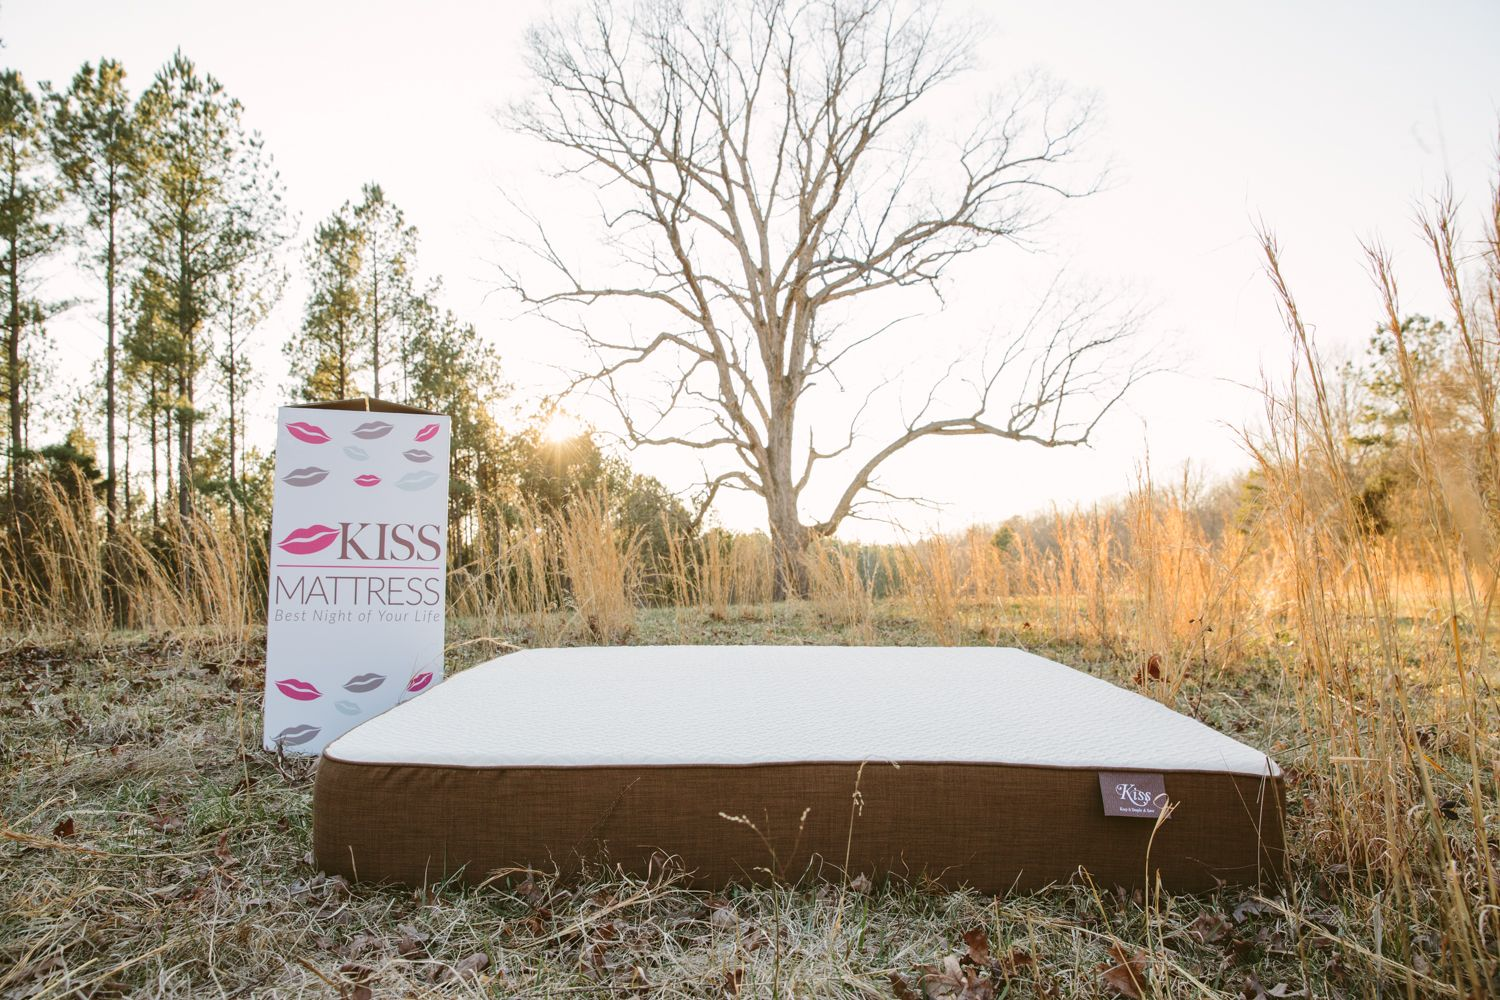 All Natural Mattress bringing the outdoors in. Kiss Mattress the Best Night of Your Life.